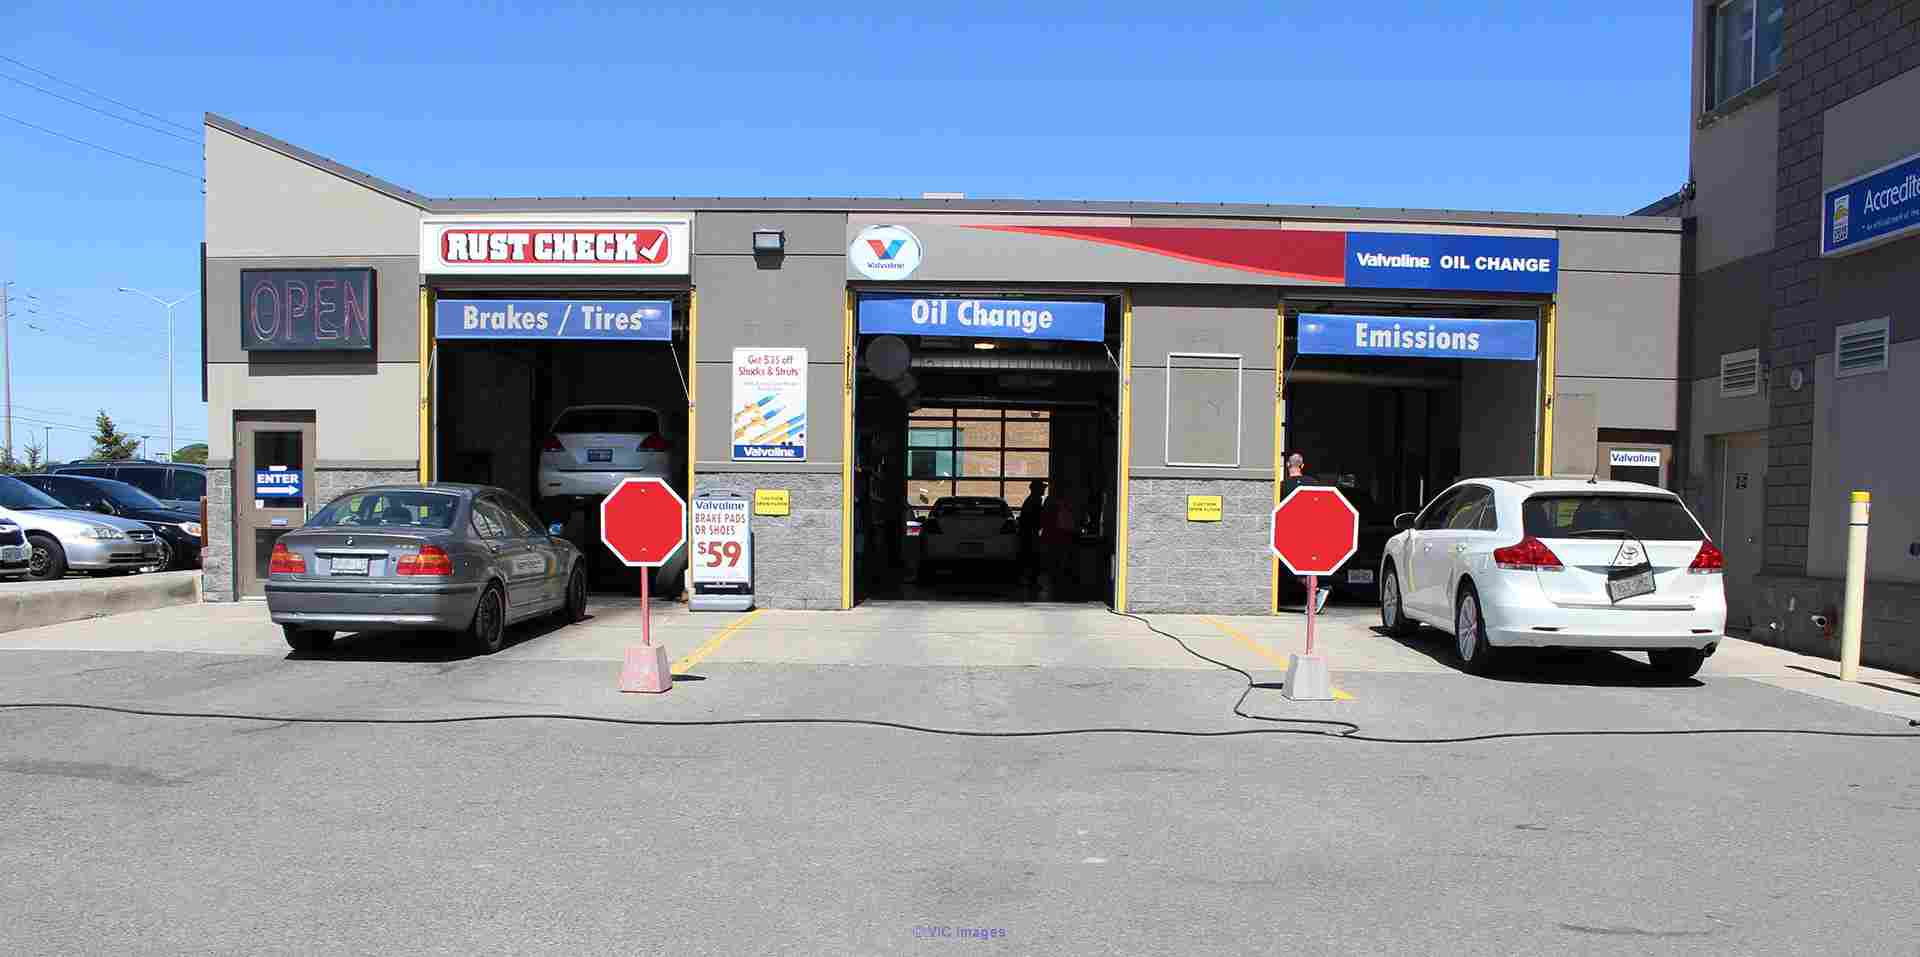 Cheapest Oil Change In Brampton Calgary, Alberta, Canada Classifieds